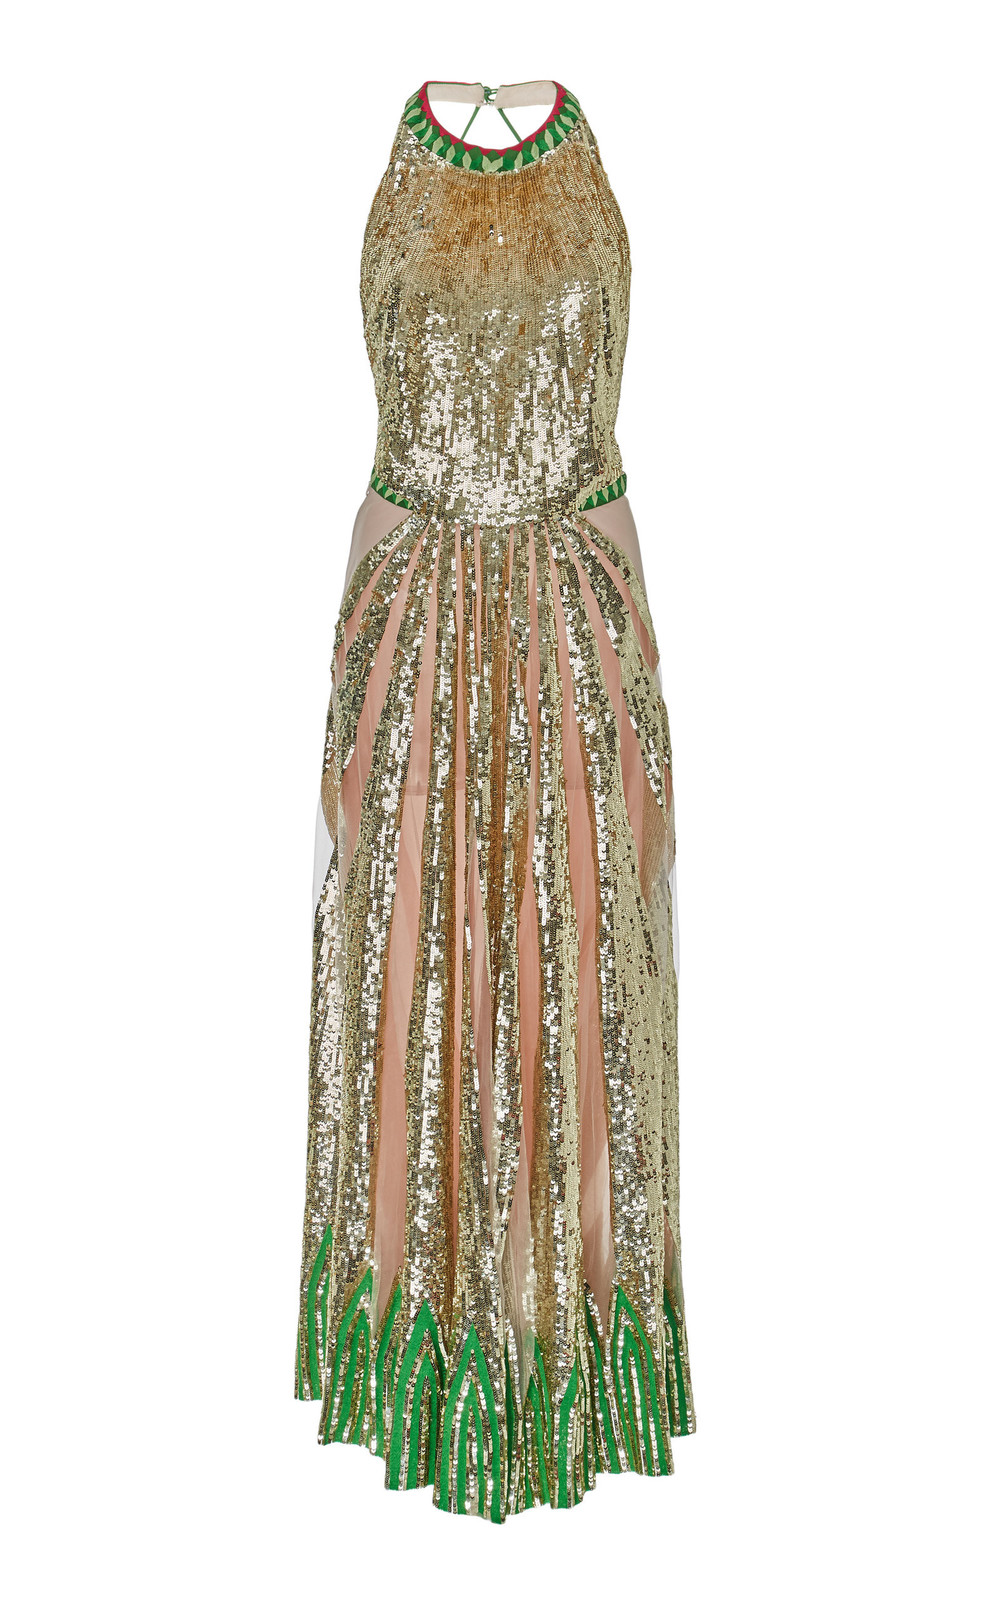 20662fa1ec1 Temperley London Sycamore Sequin-Embellished Gown in green